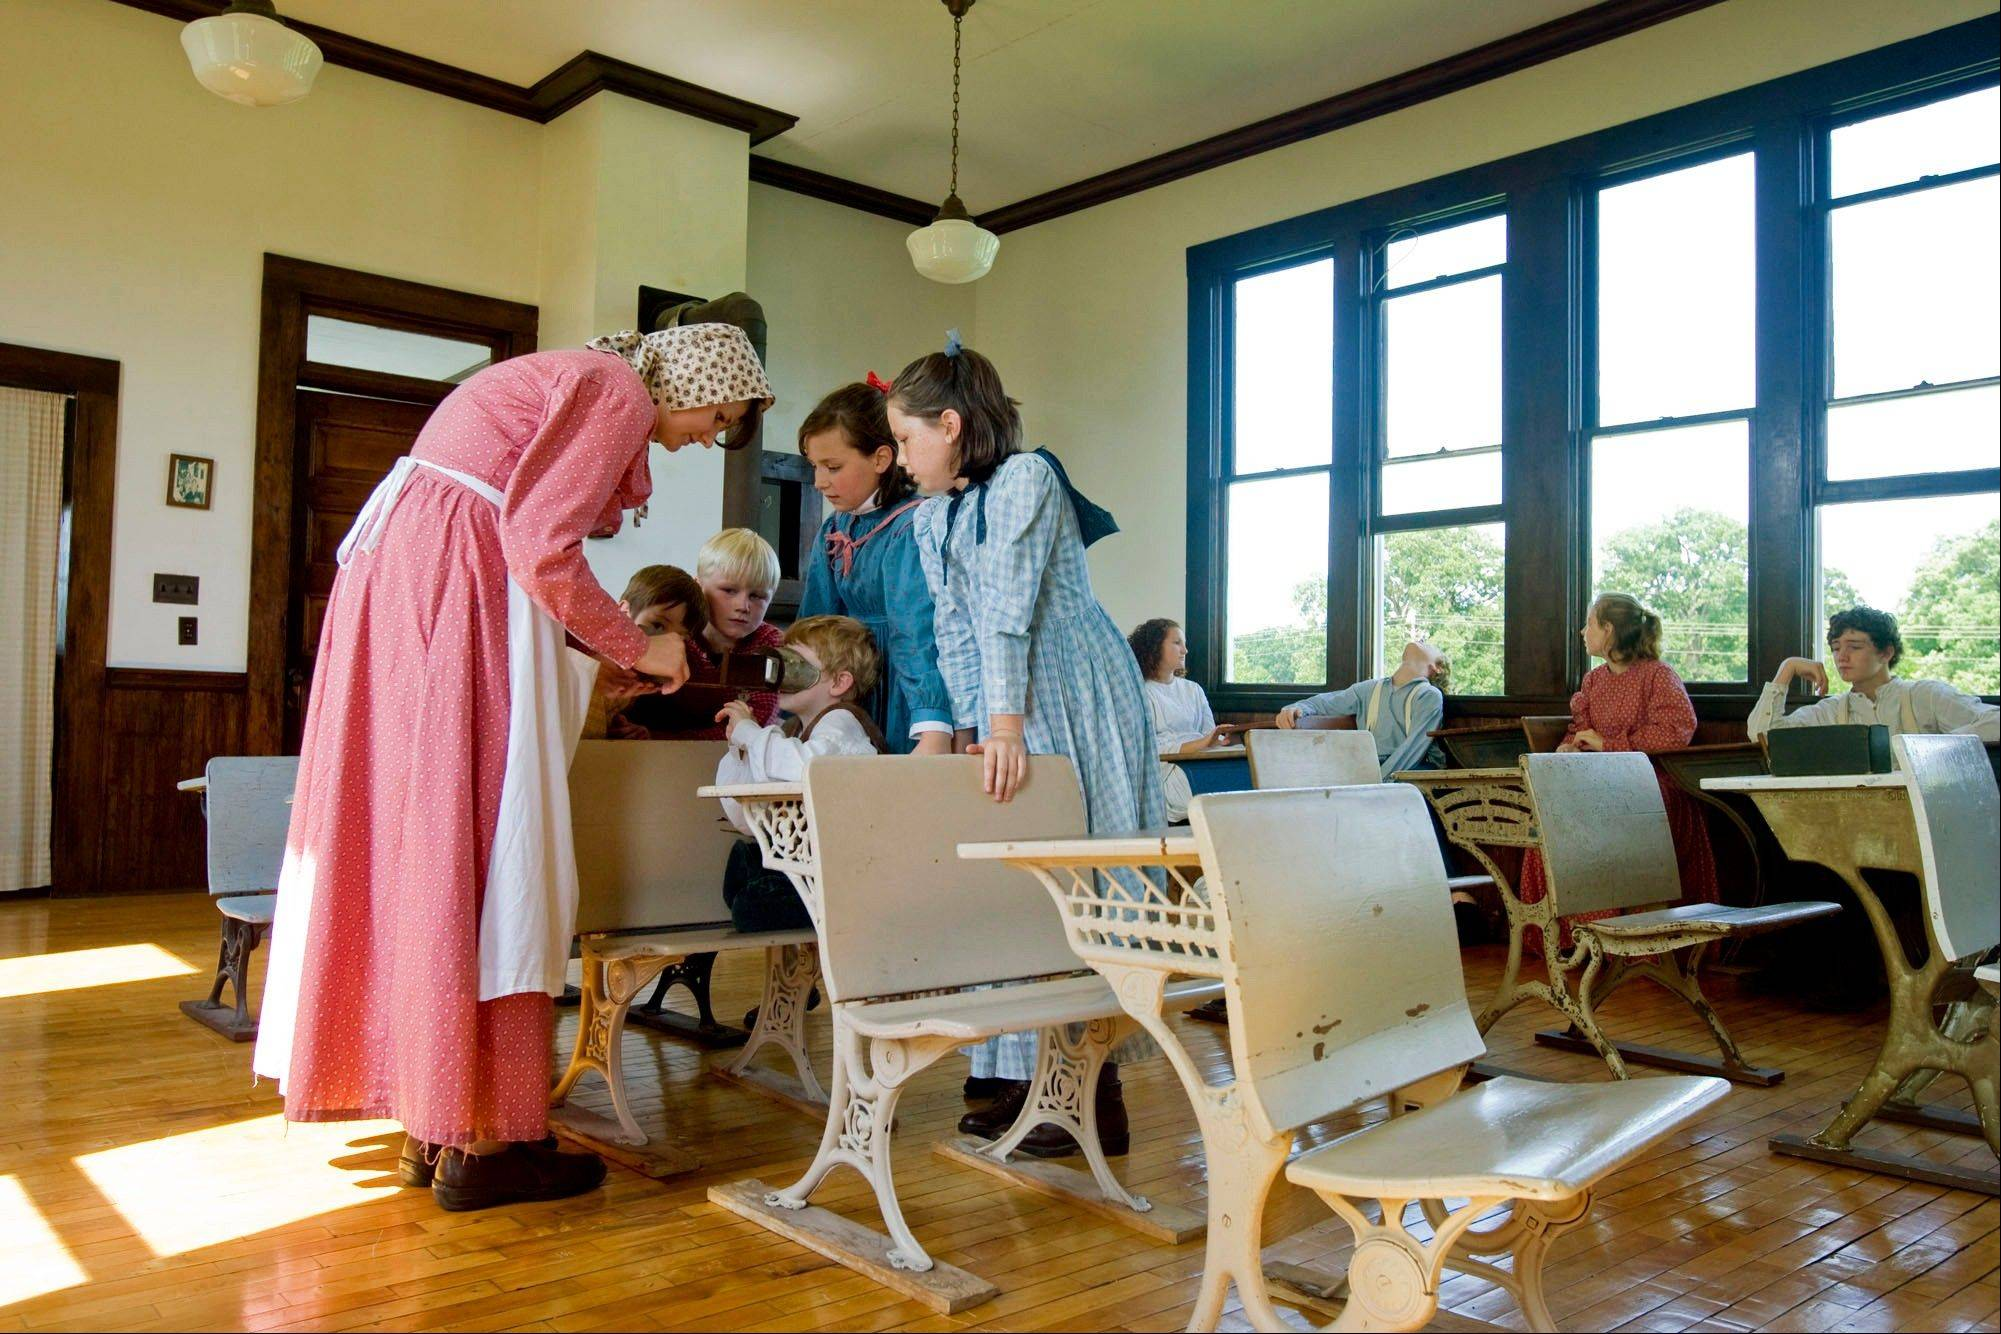 Charlotte Rayburn, left, shows an optical device to a group of children in the one-room Bethel School in June at the Friends Creek Conservation Area near Cisco, Ill. Built circa 1890, the school welcomed its last class in 1946.